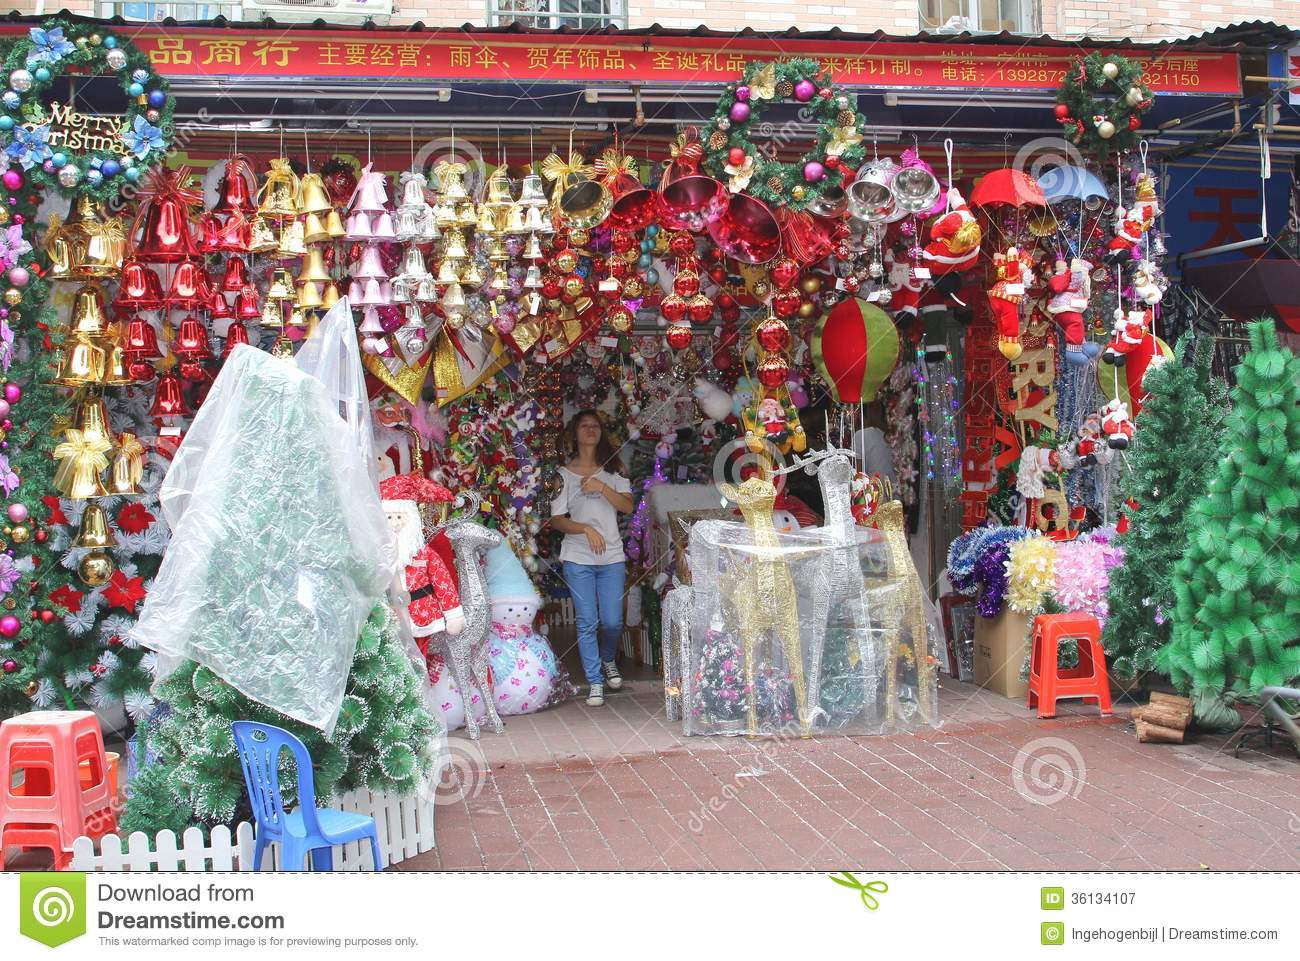 Shop with christmas decorations sales in guangzhou china for Salon xmas decorations